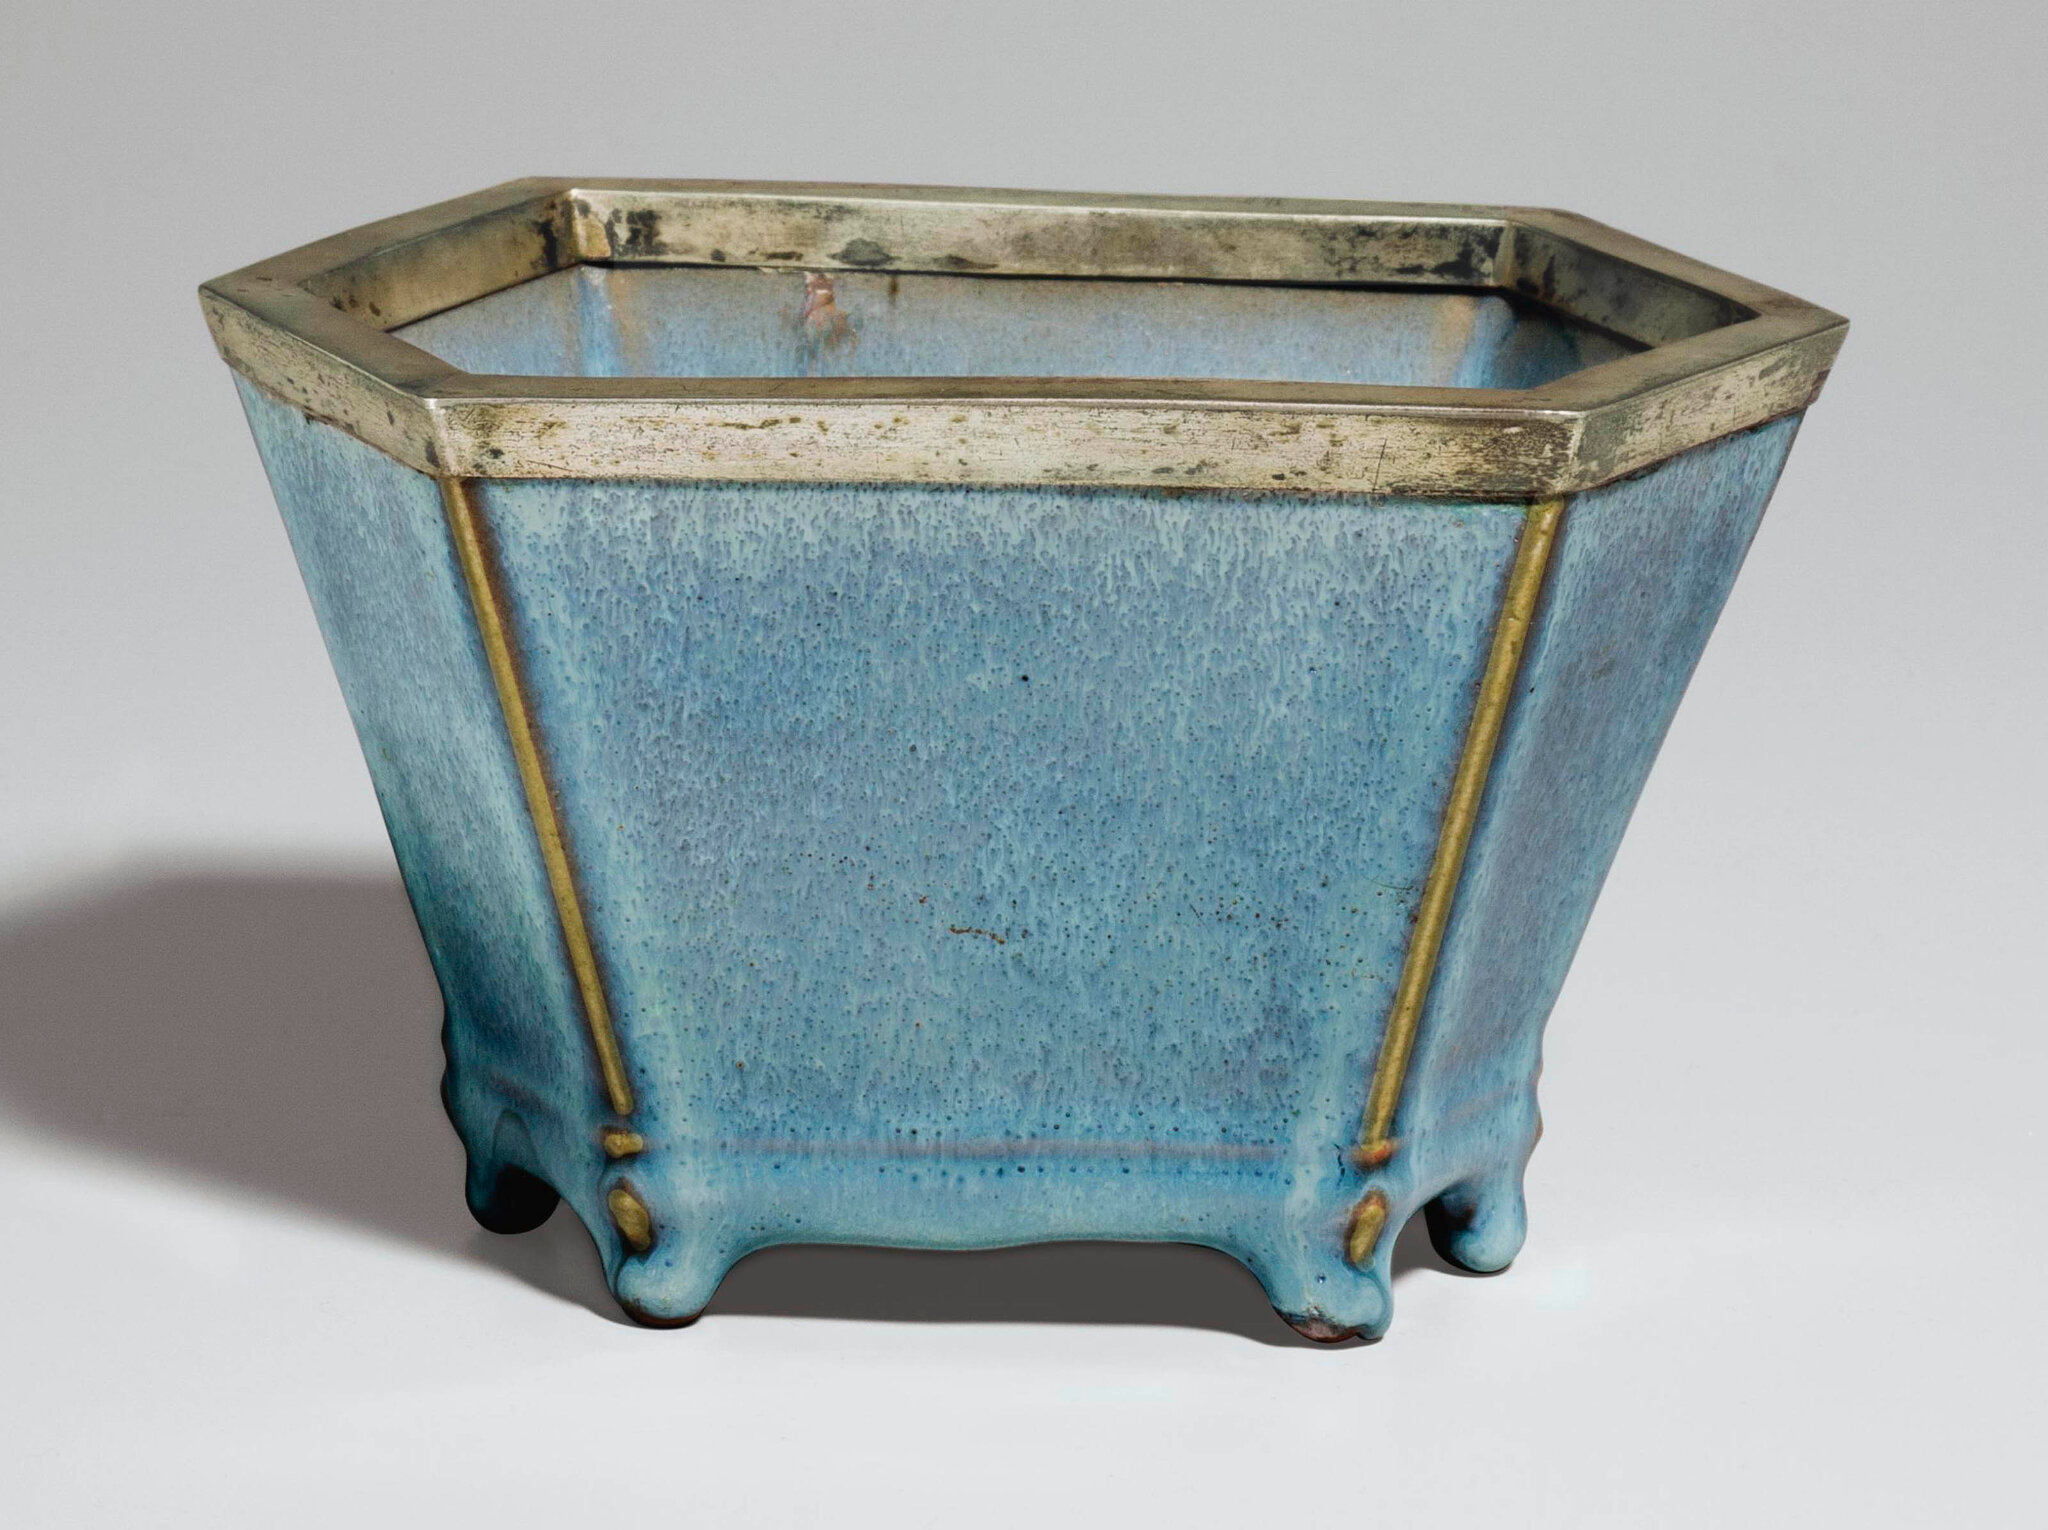 A very rare 'numbered' Junyao hexagonal flower pot, Yuan-early Ming dynasty, 14th-15th century